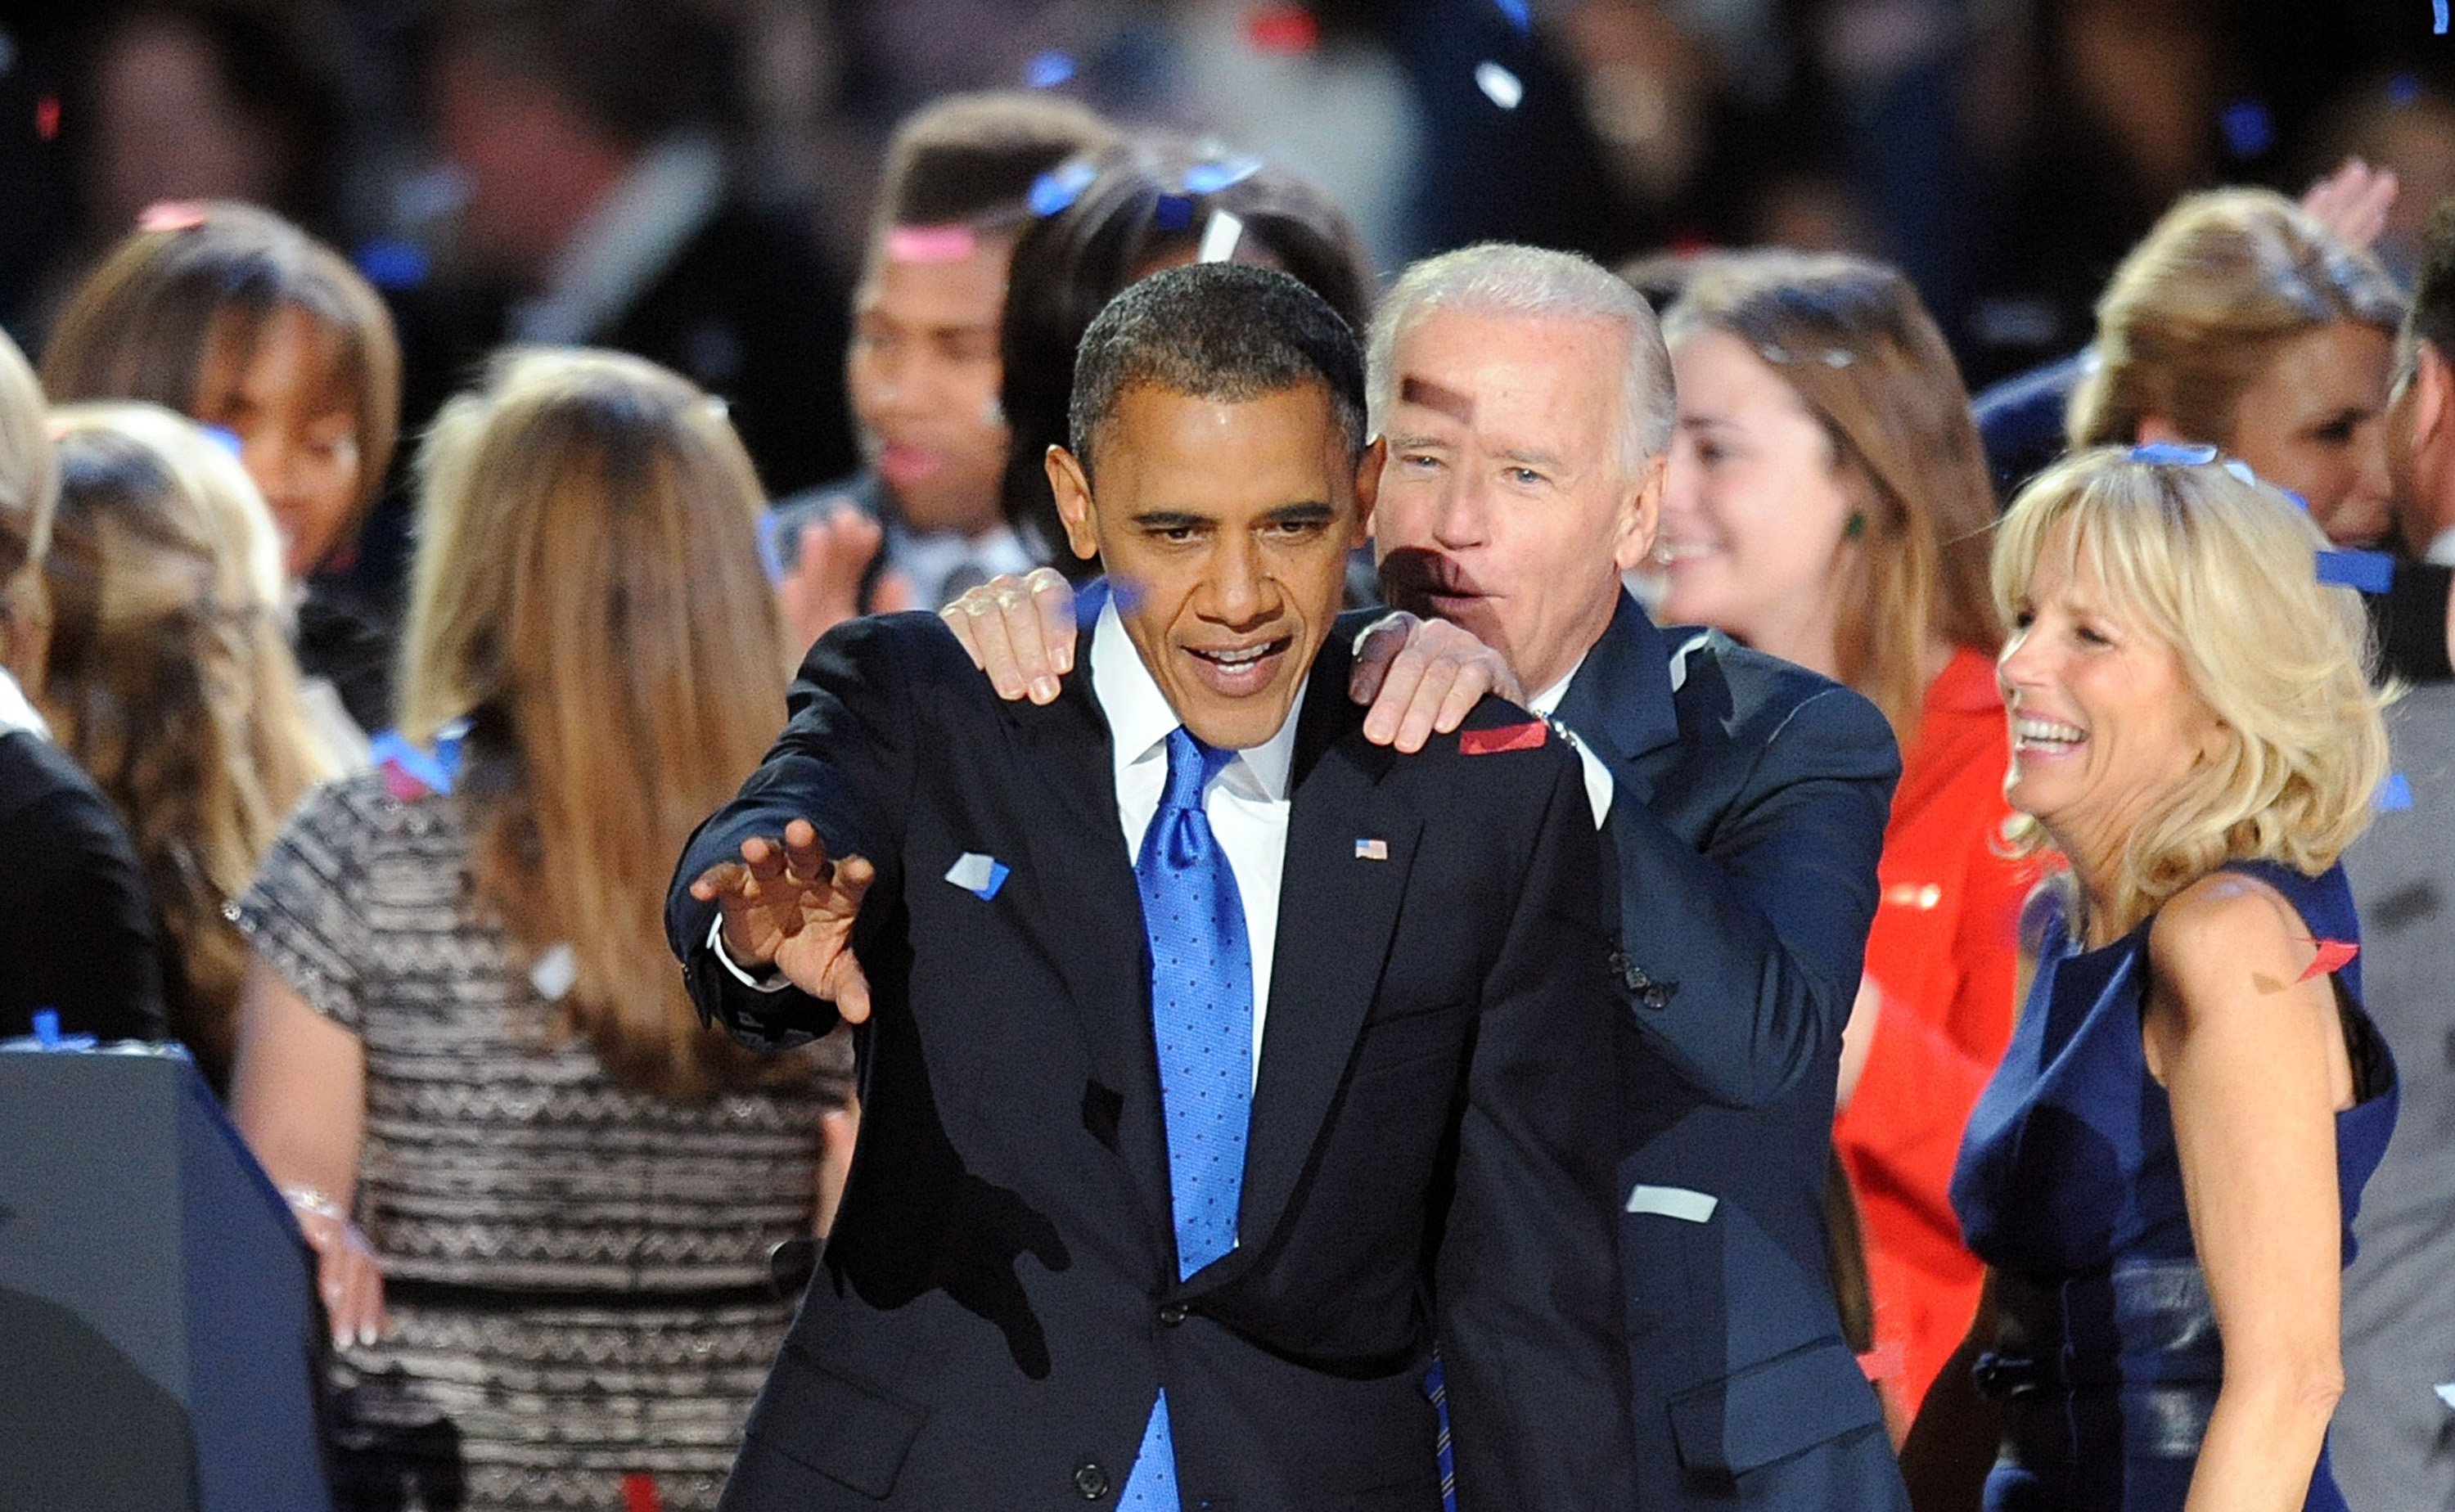 Vice President Joe Biden congratulates U.S. President Barack Obama on stage Tuesday, November 6, 2012, in Chicago, Illinois, after the president was re-elected. (Olivier Douliery/Abaca Press/MCT)